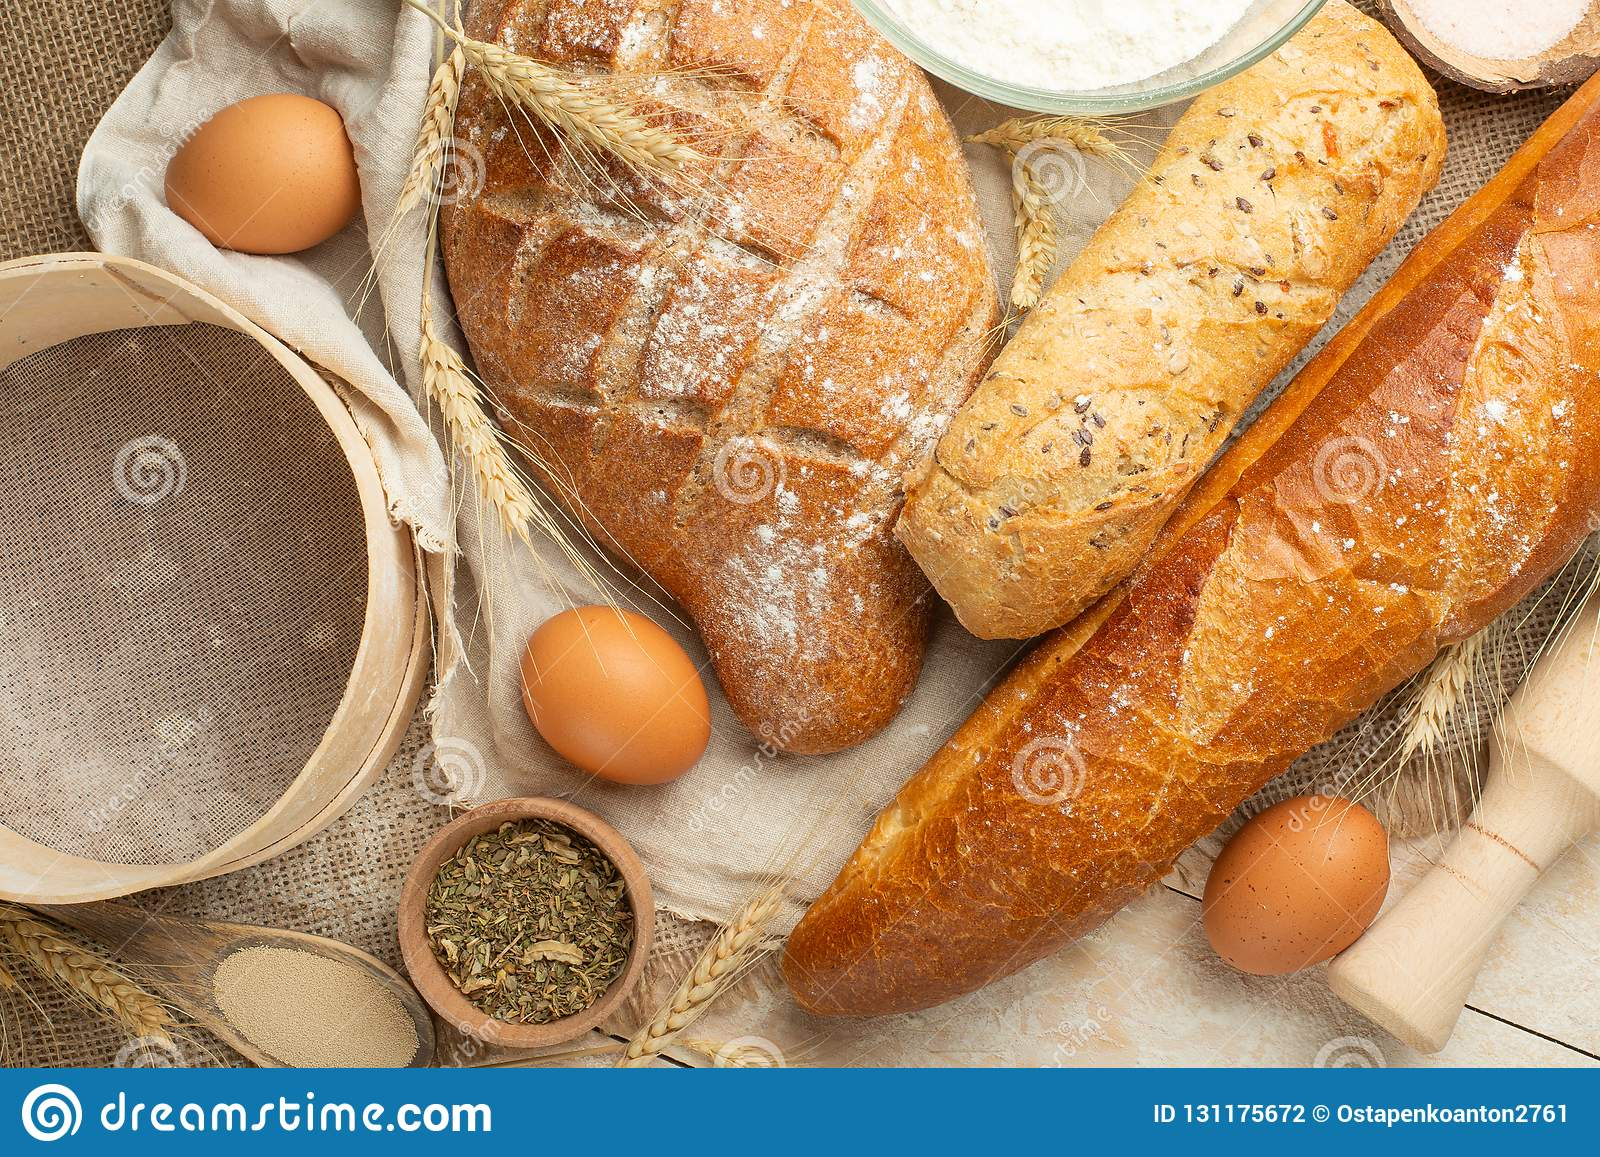 Different sorts of bread with wheat and eggs, top view. The concept of a bakery and food store.